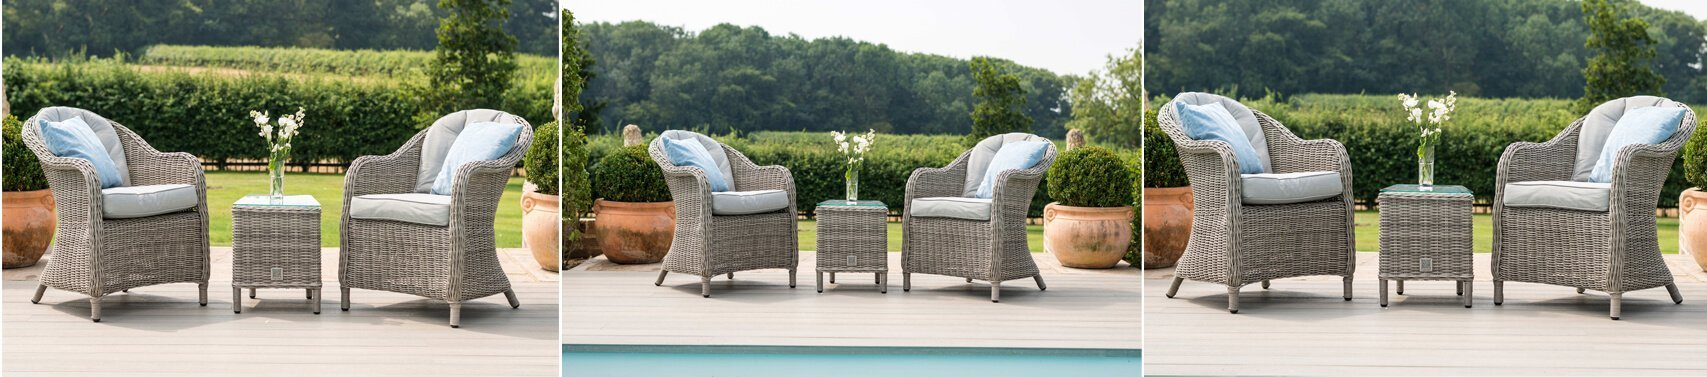 mbimages/m/a/maze_rattan_oxford_3_piece_lounge_set.jpg